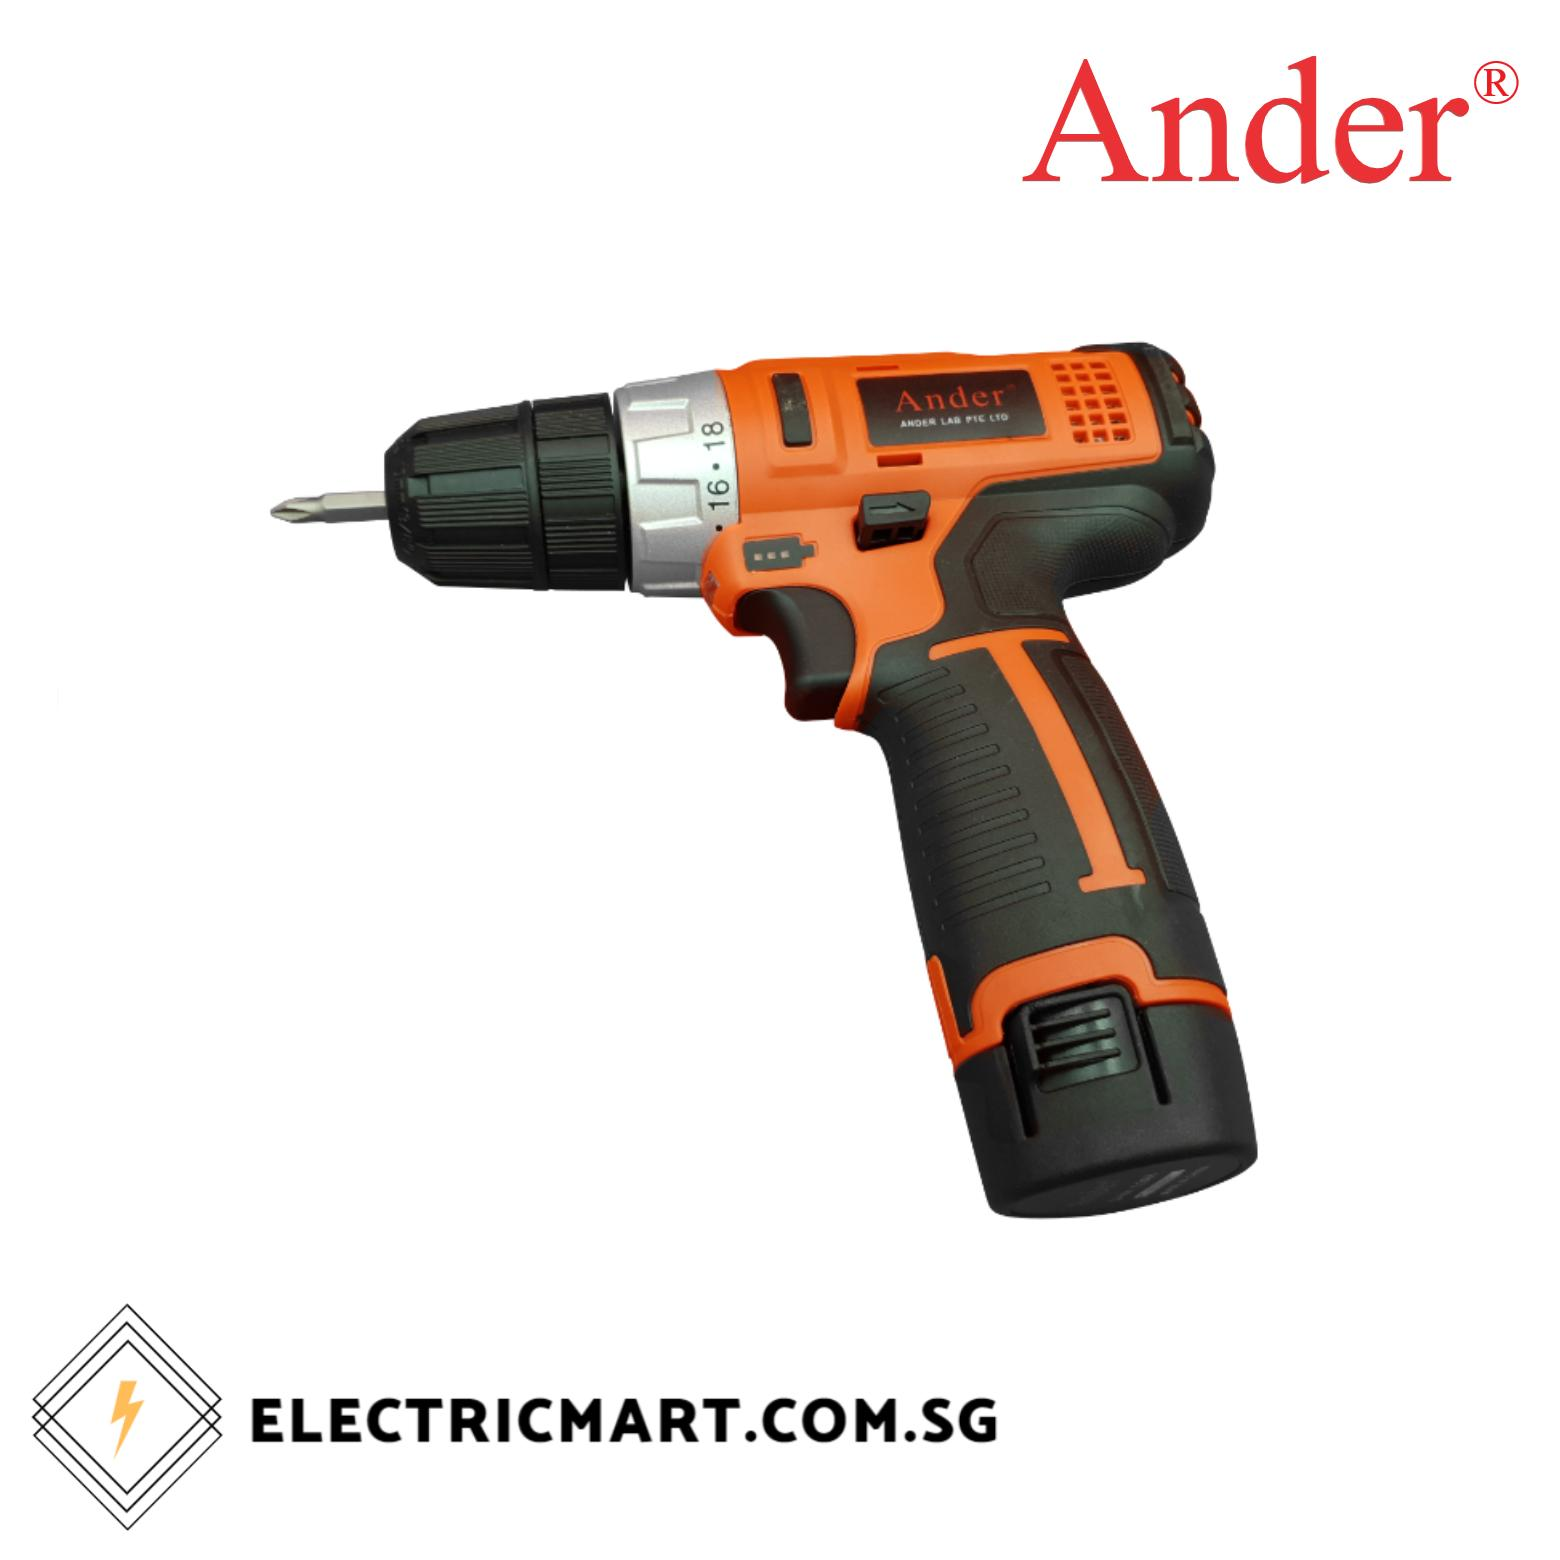 Ander 6512 Cordless Power Drill c/w 12V Li-ion battery Model:835067